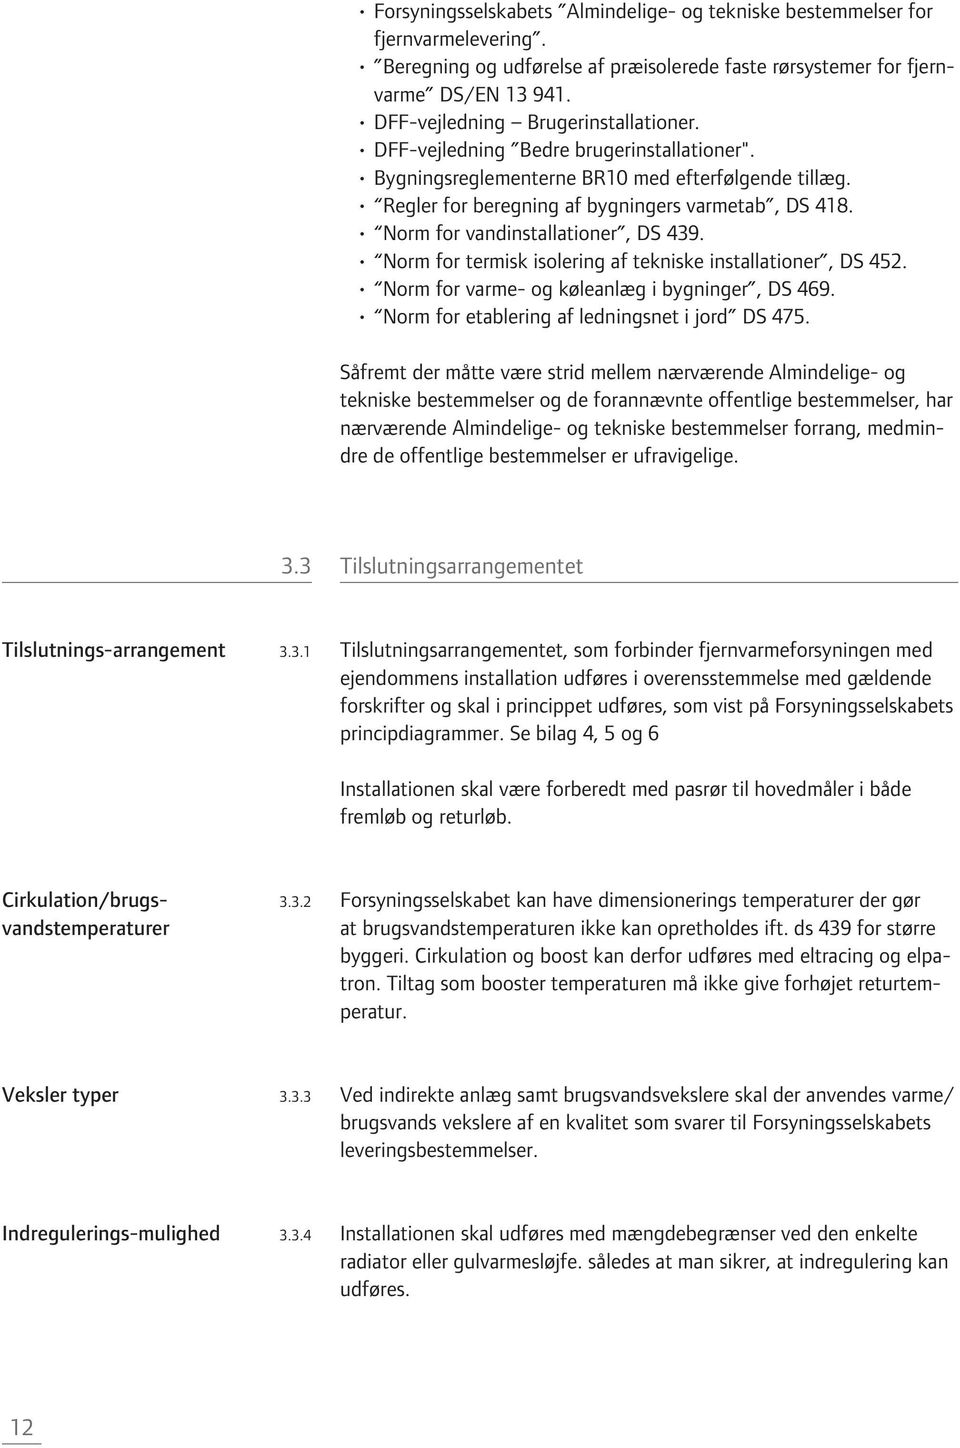 Norm for vandinstallationer, DS 439. Norm for termisk isolering af tekniske installationer, DS 452. Norm for varme- og køleanlæg i bygninger, DS 469. Norm for etablering af ledningsnet i jord DS 475.